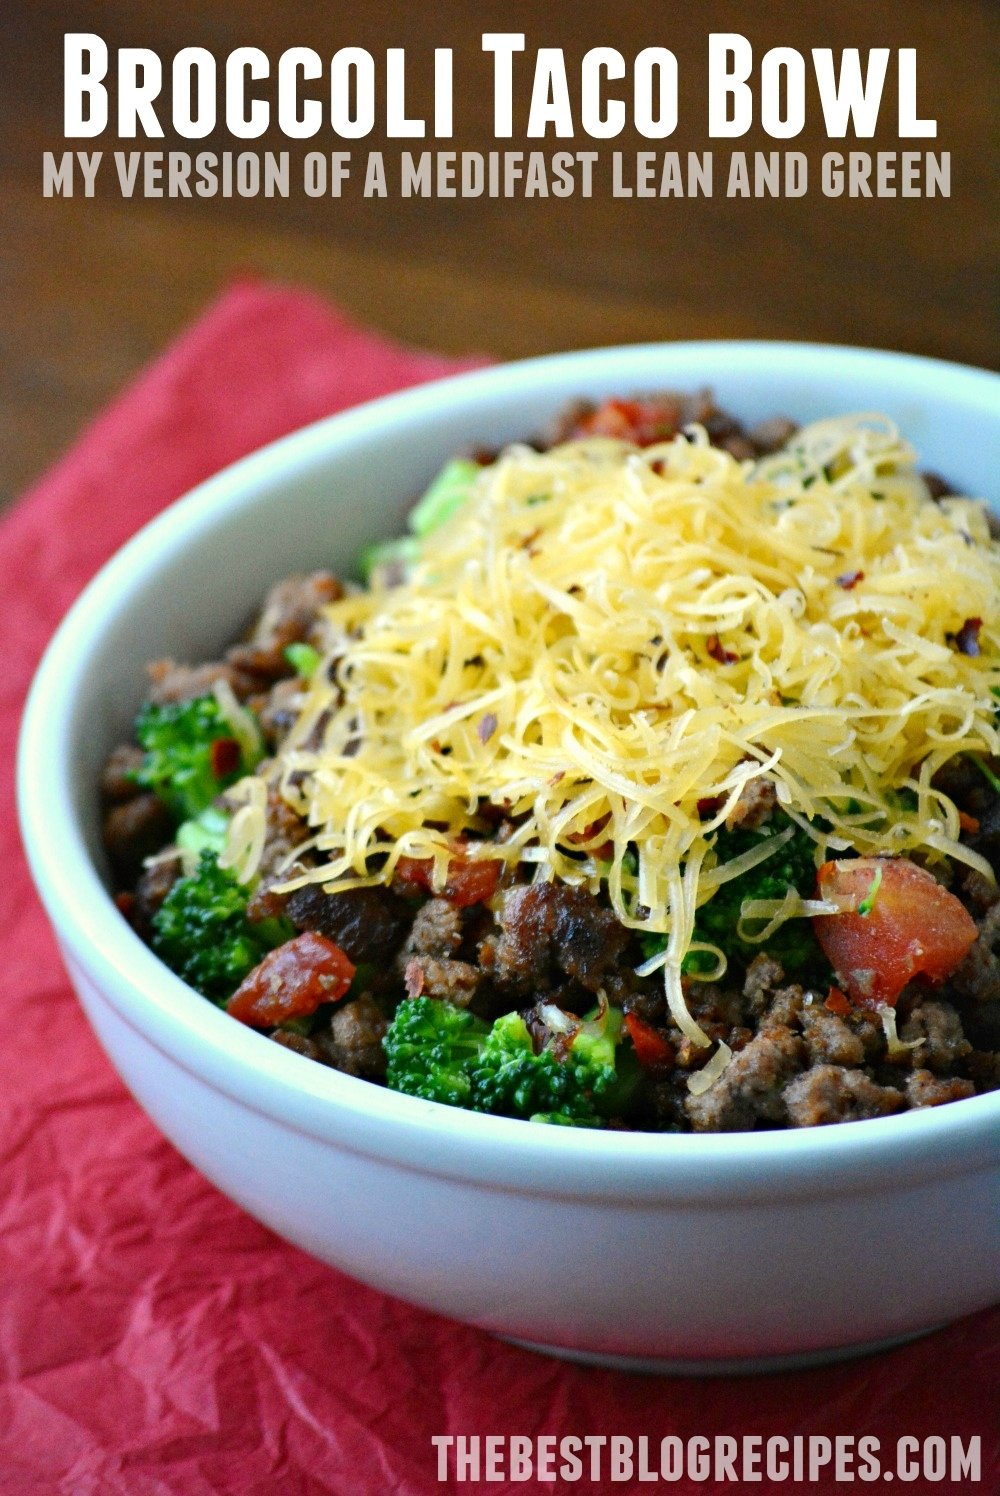 10 Trendy Medifast Lean And Green Meal Ideas macaroni goulash 40 easy money saving ground beef dinners 2021